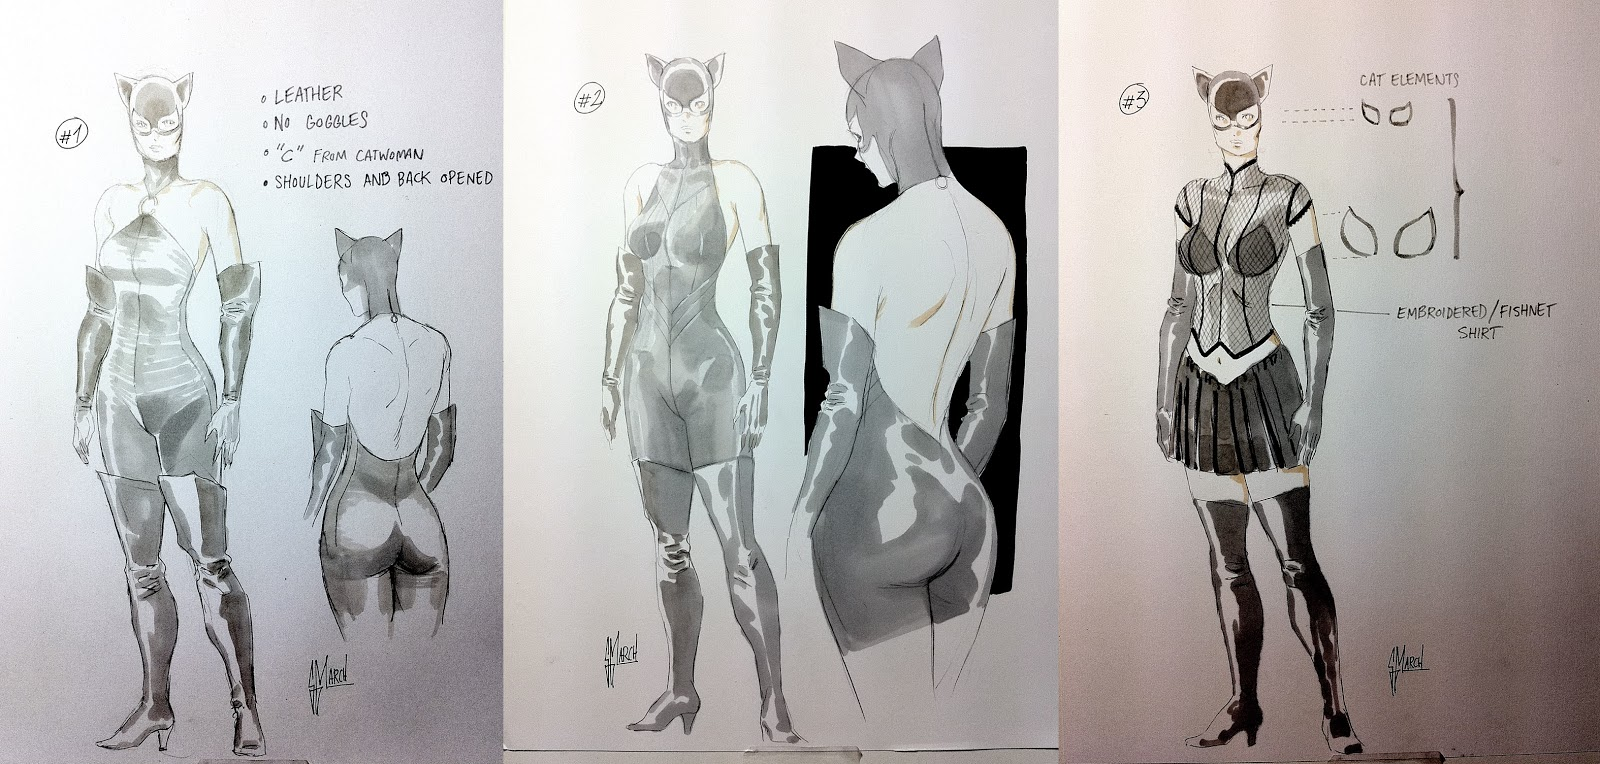 CATWOMAN designs by Guillem March